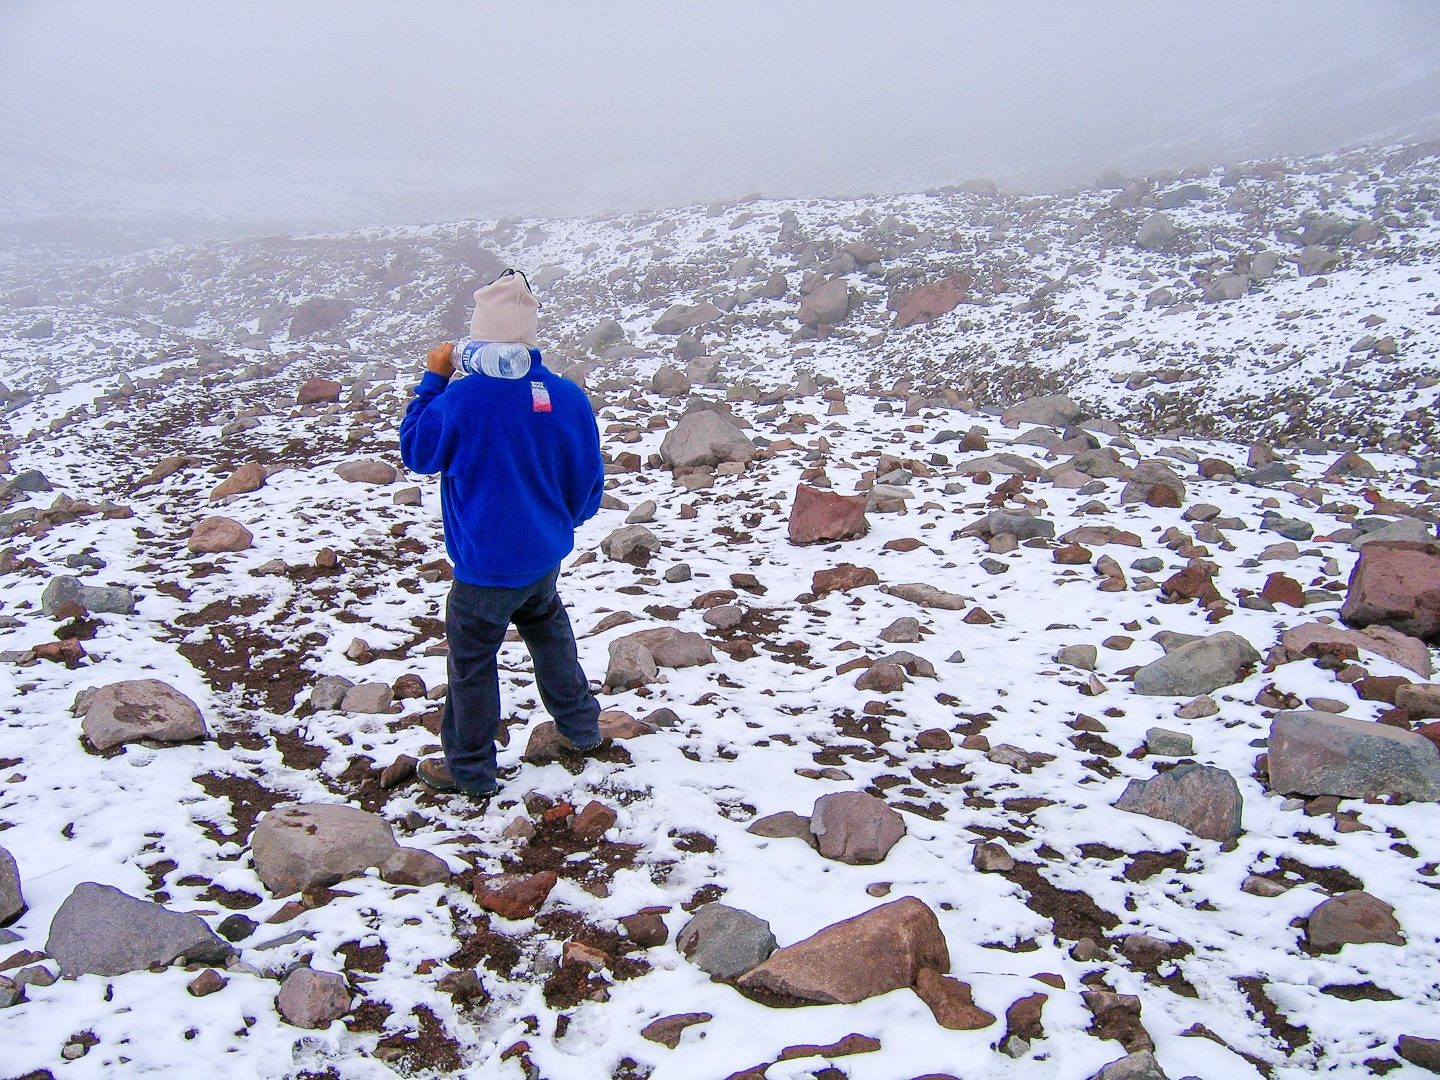 The last thing Ernie remembers before nearly blacking out over 5000m on Chimborazo in Ecuador was his guide Joel trotting along the mounting like they were at sea level.